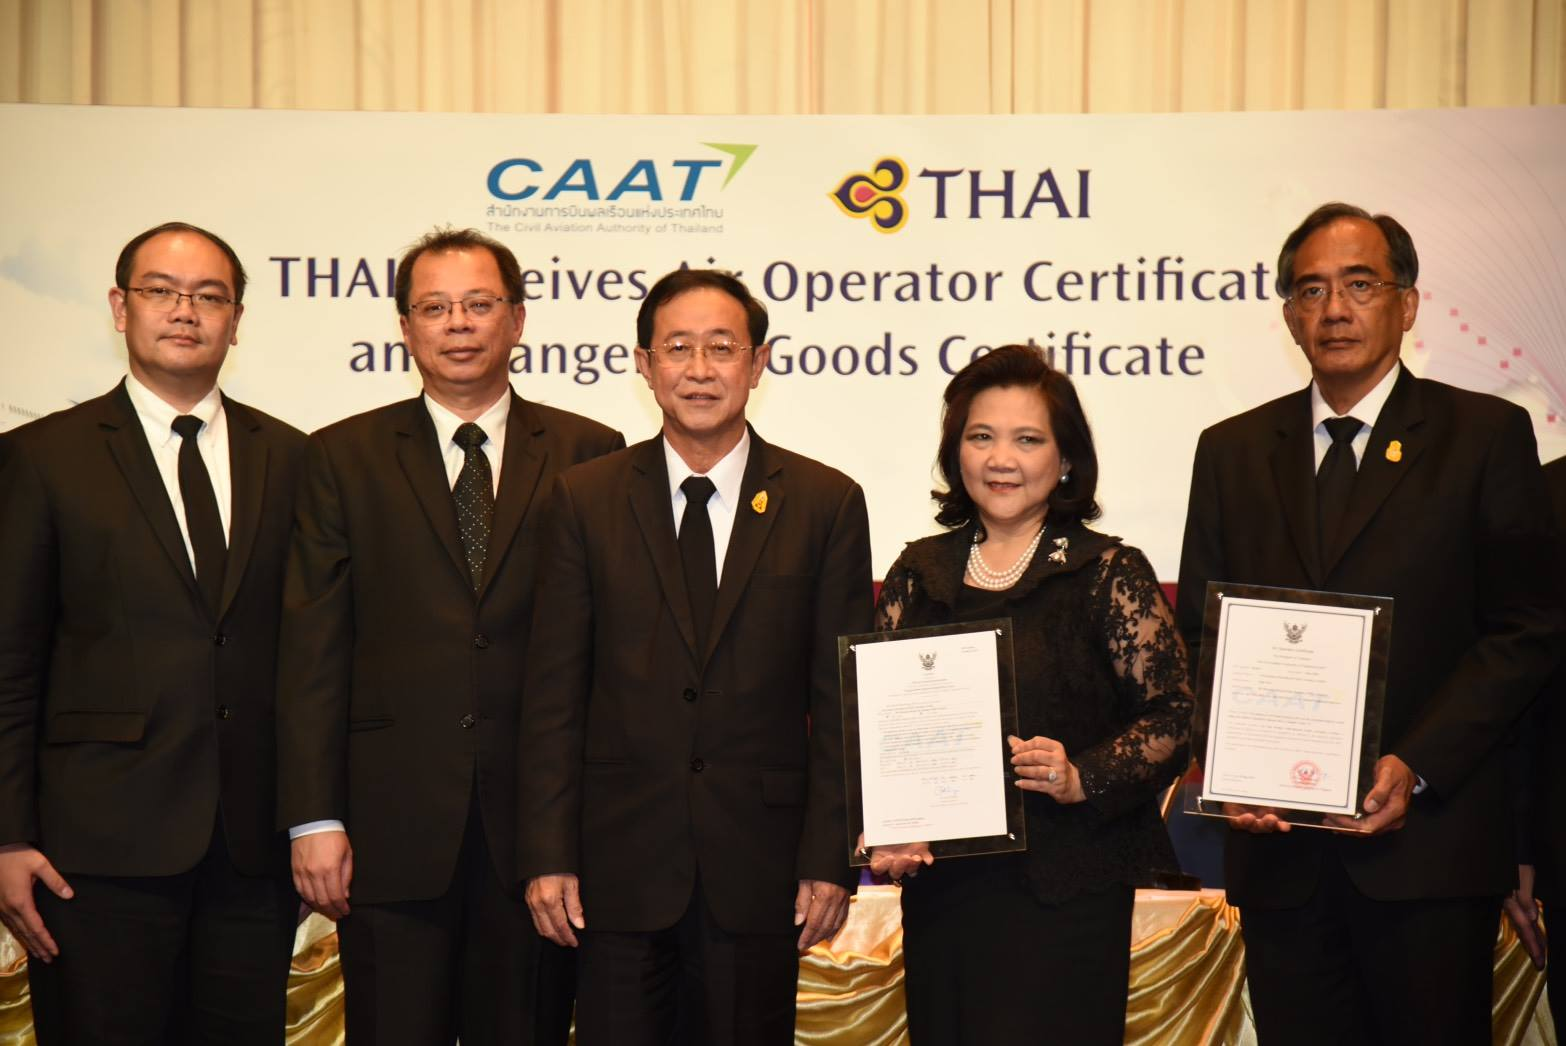 THAI Receives New Air Operator Certificate and Dangerous Goods Certificate